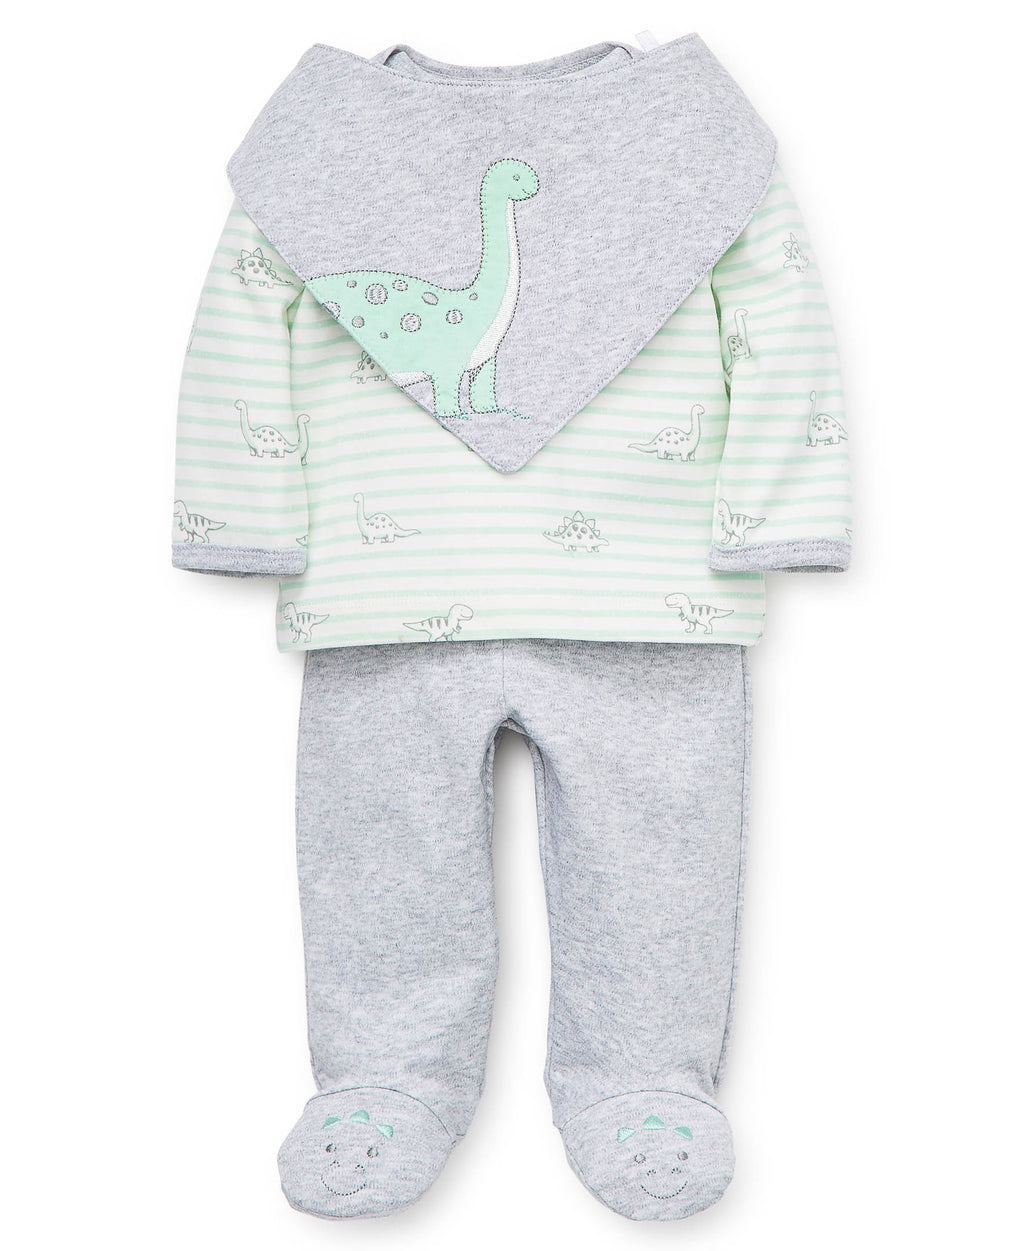 Stripe Dino Footed Pant Set